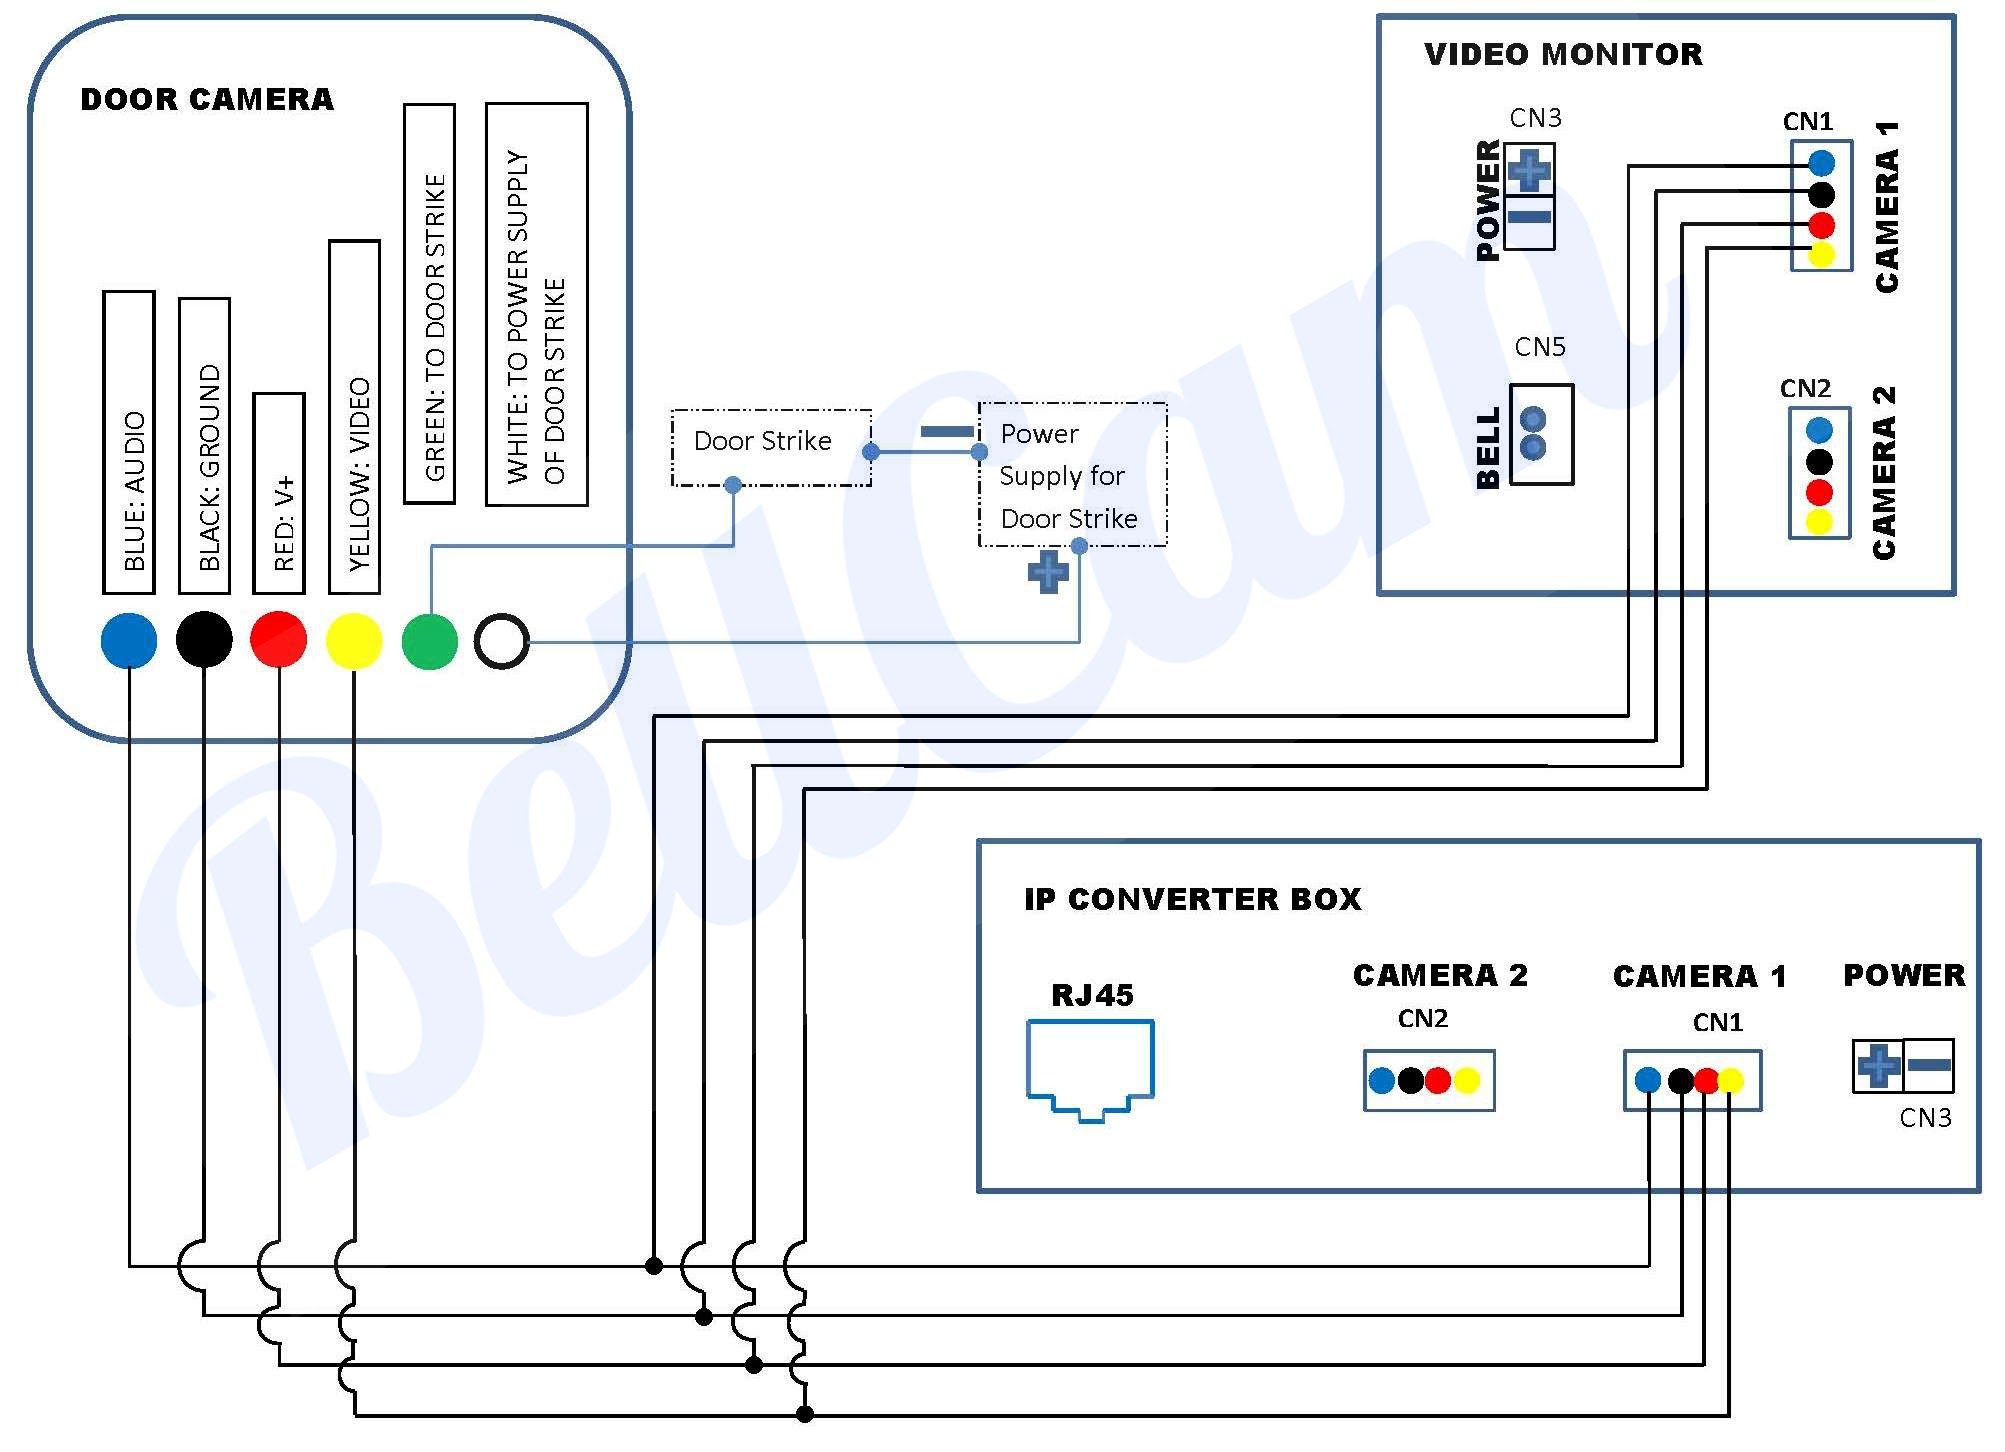 [DIAGRAM_09CH]  DIAGRAM] Panasonic Intercom Wiring Diagram FULL Version HD Quality Wiring  Diagram - DIAGRAMGAME.GLAUCOMANET.IT | Intercom Wiring Diagram |  | Glaucomanet.it